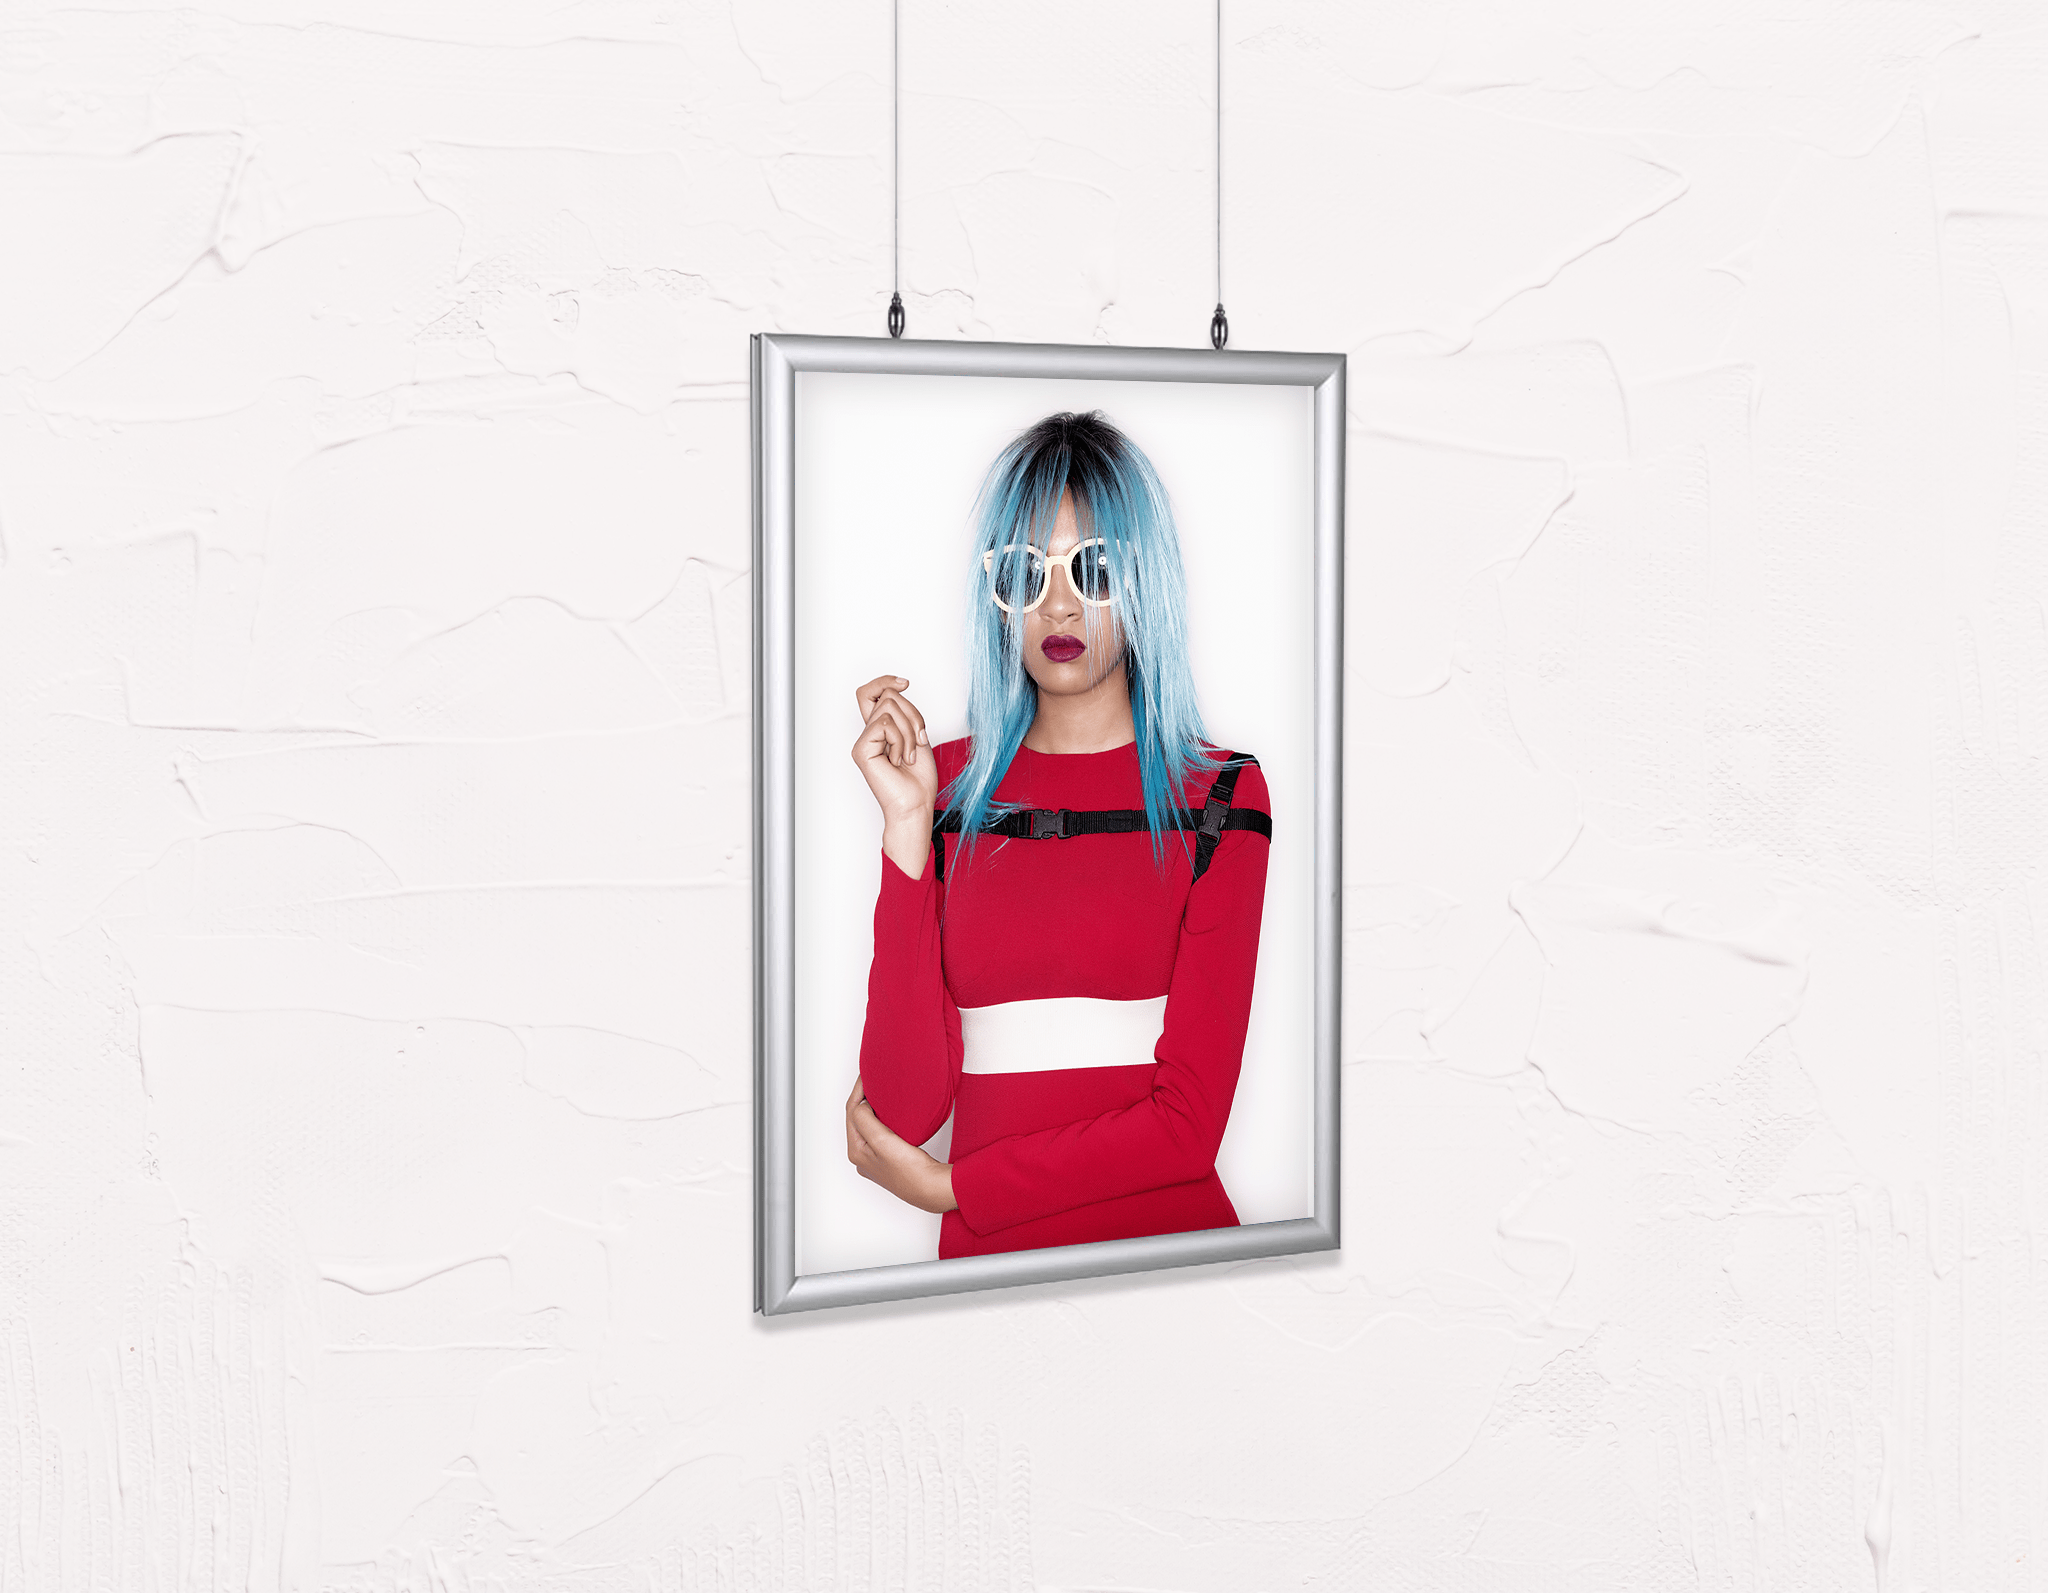 Salon Poster Click Frames, Double-Sided: Woman Front with Blue Bob Hairstyle in Red Dress